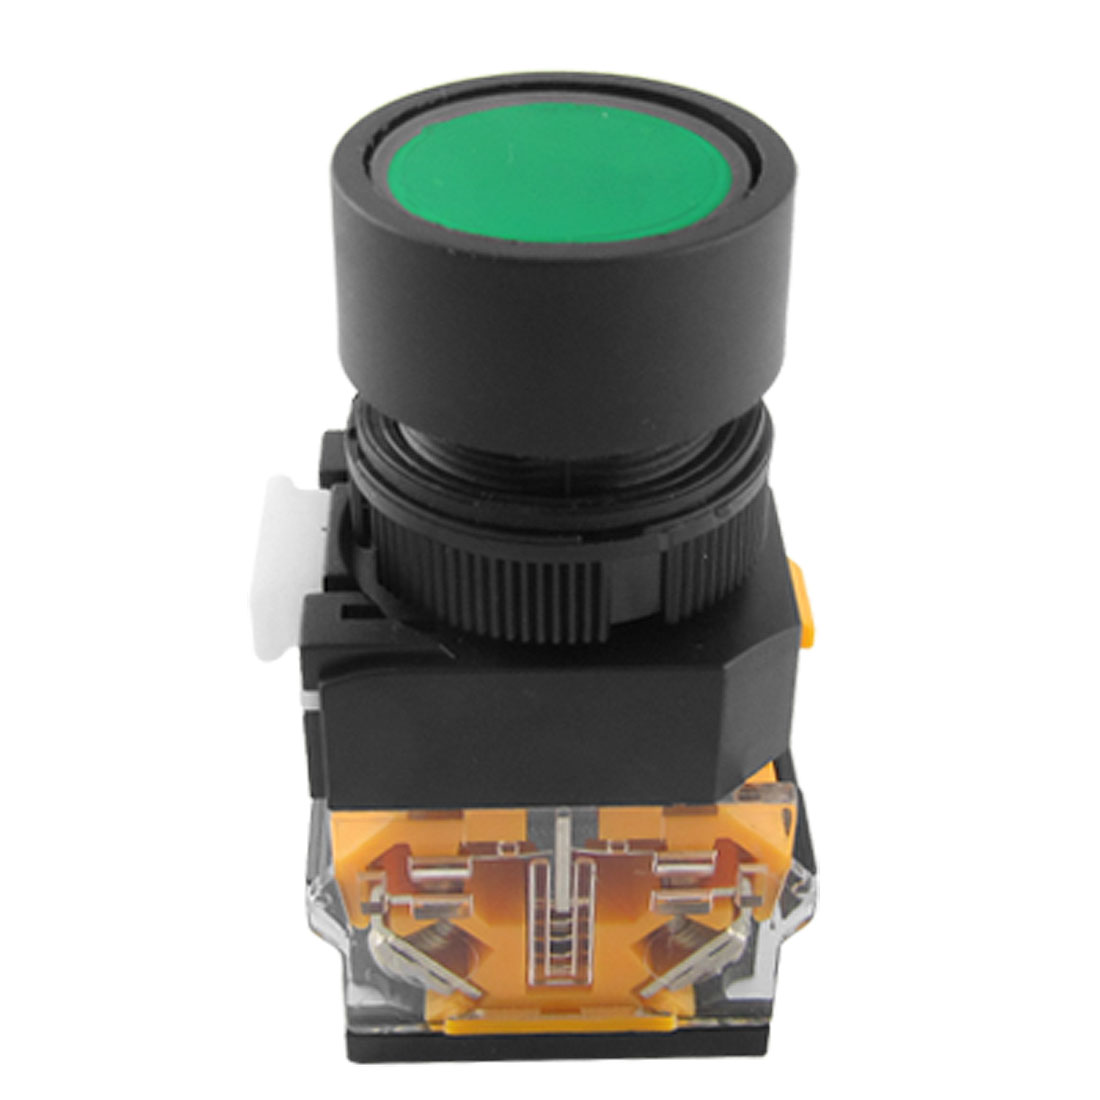 AC 660V 10A Green Sign Ignition Momentary Push Button Switch 22mm 1 N0 1 NC